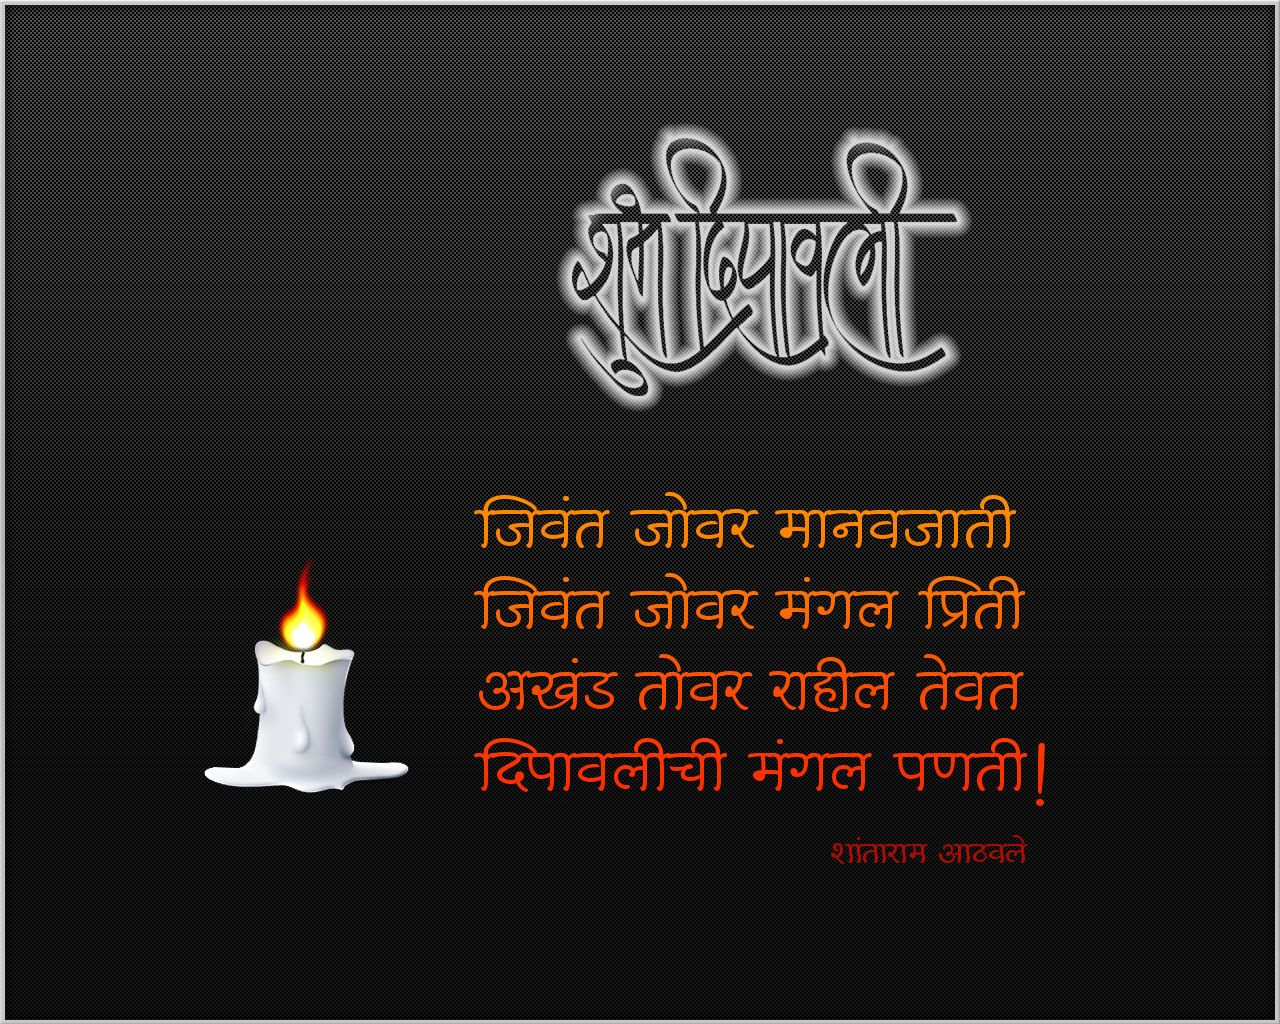 Deepavali greetings hindi happy diwali 2016 images wallpapers deepavali greetings hindi m4hsunfo Gallery